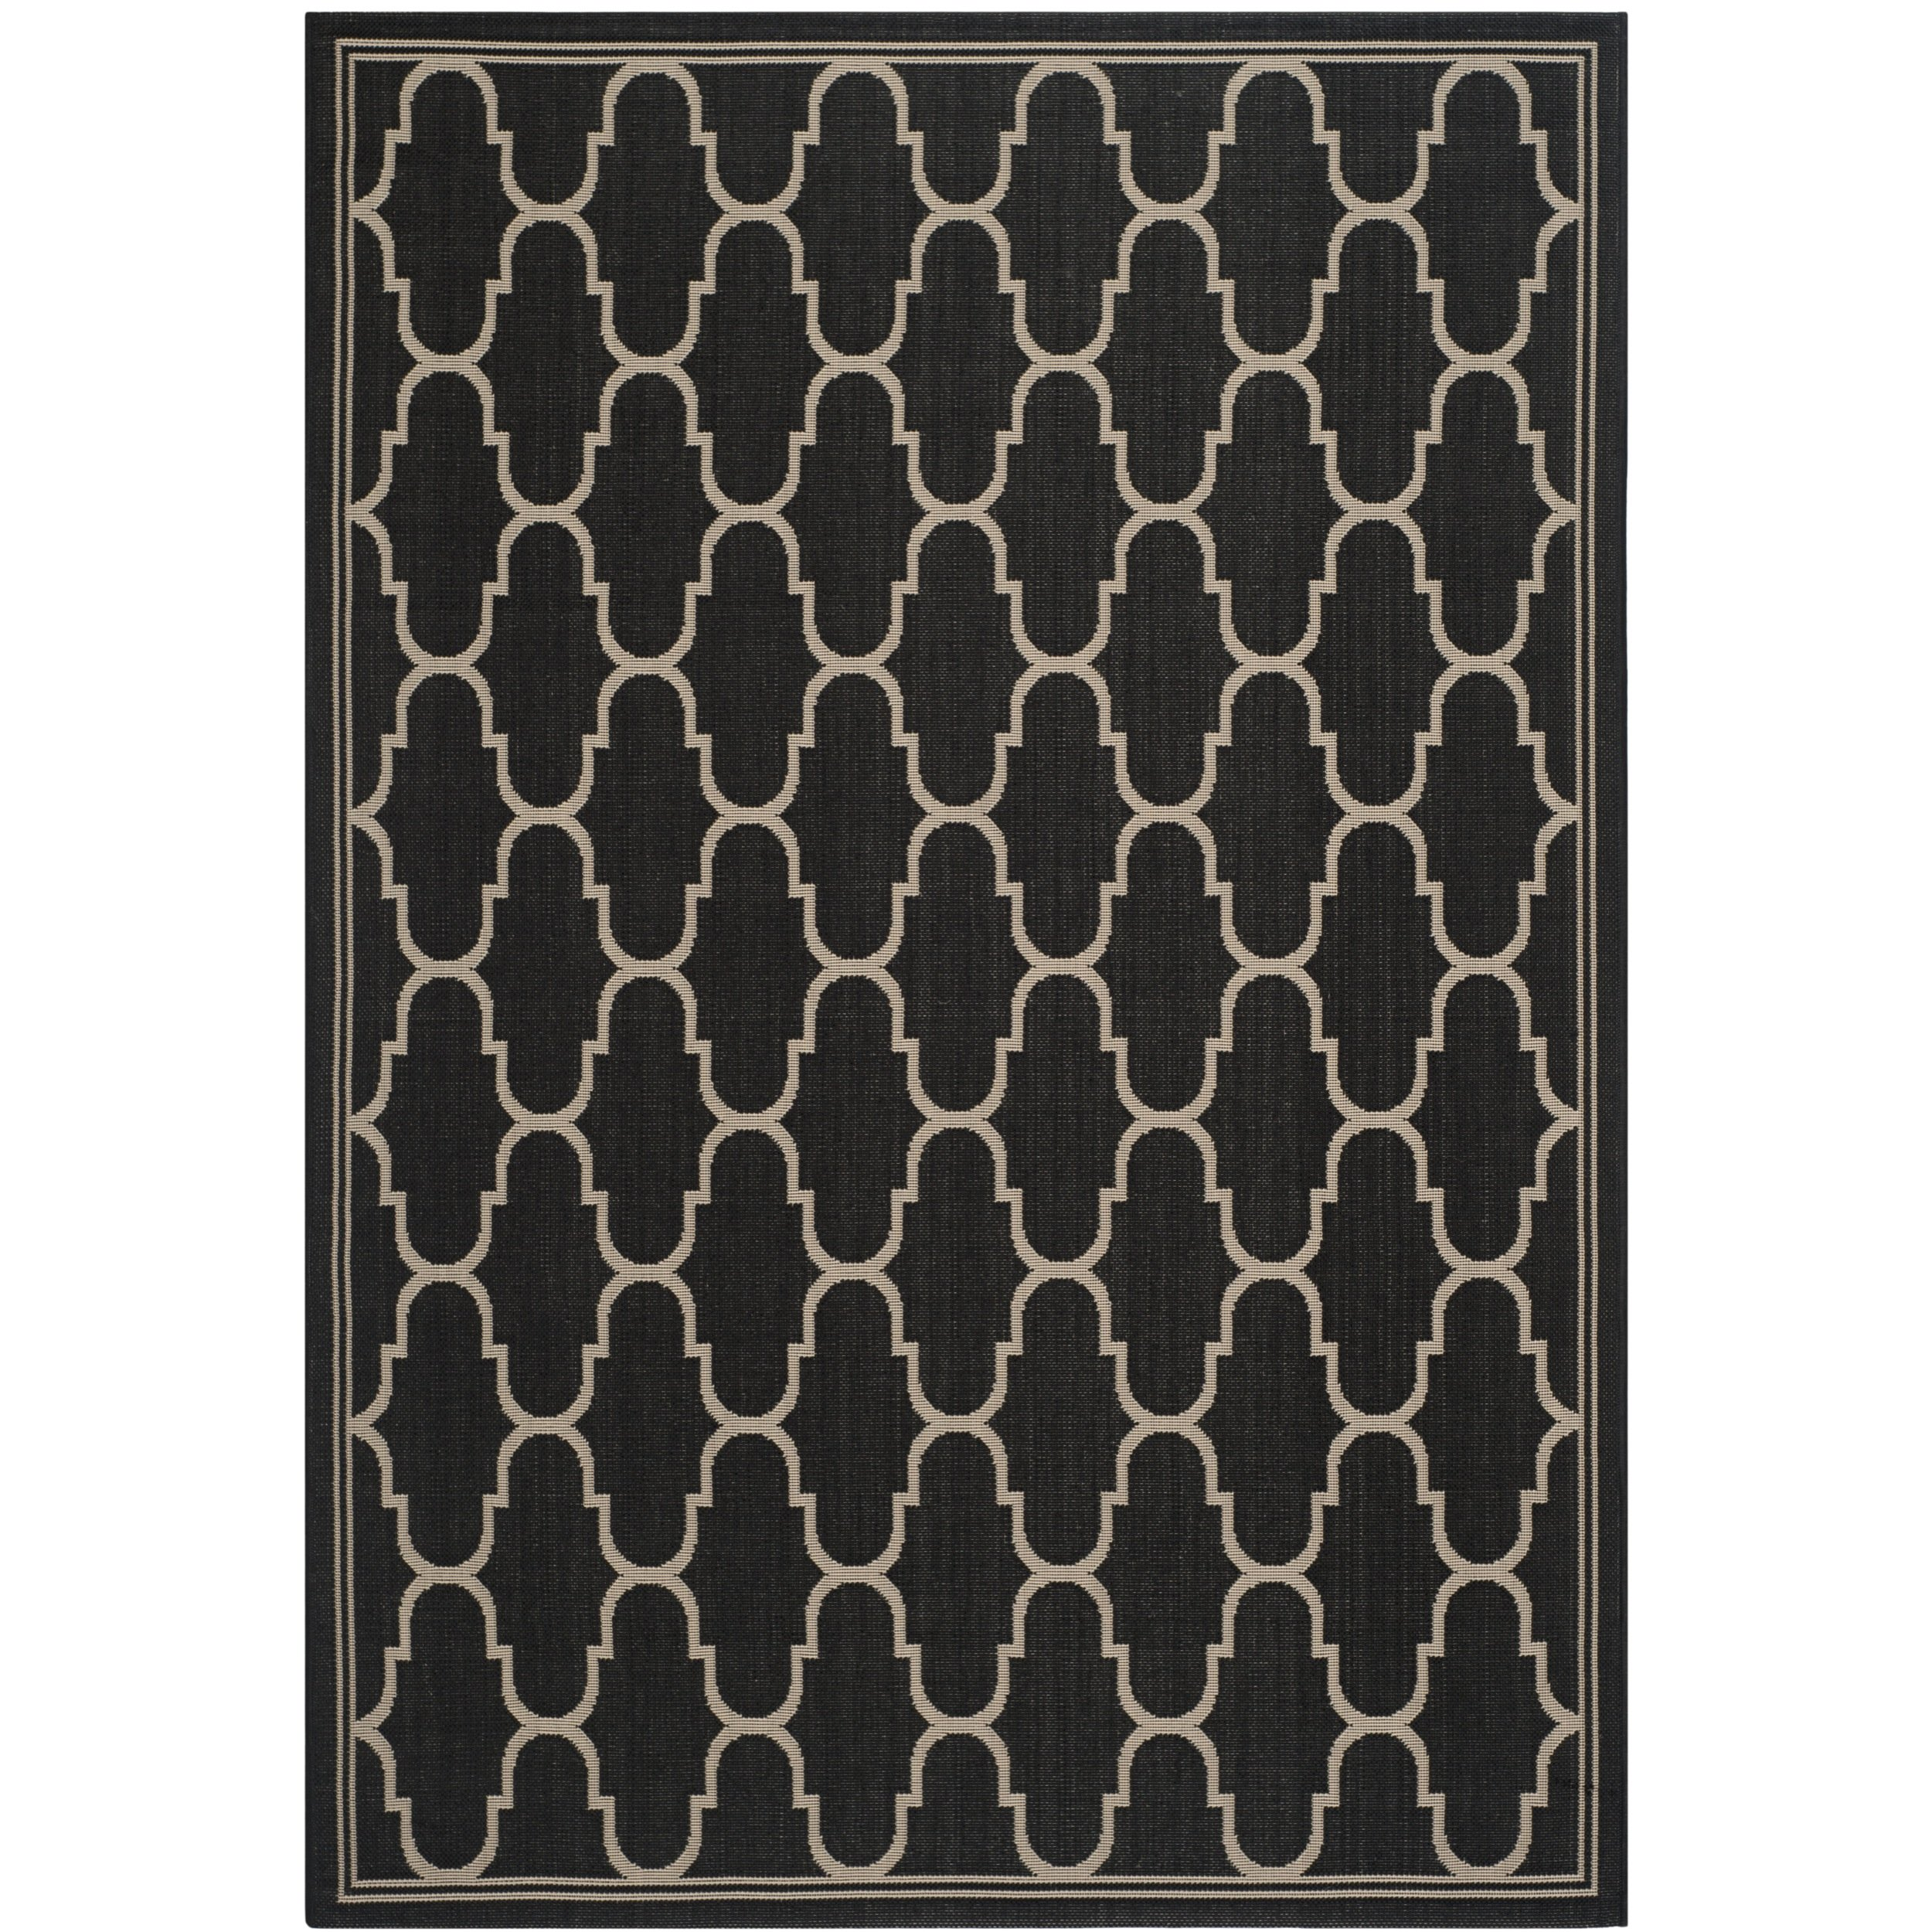 Safavieh Courtyard Collection CY6016-266 Black and Beige Indoor/ Outdoor Area Rug (9' x 12'6'') by Safavieh